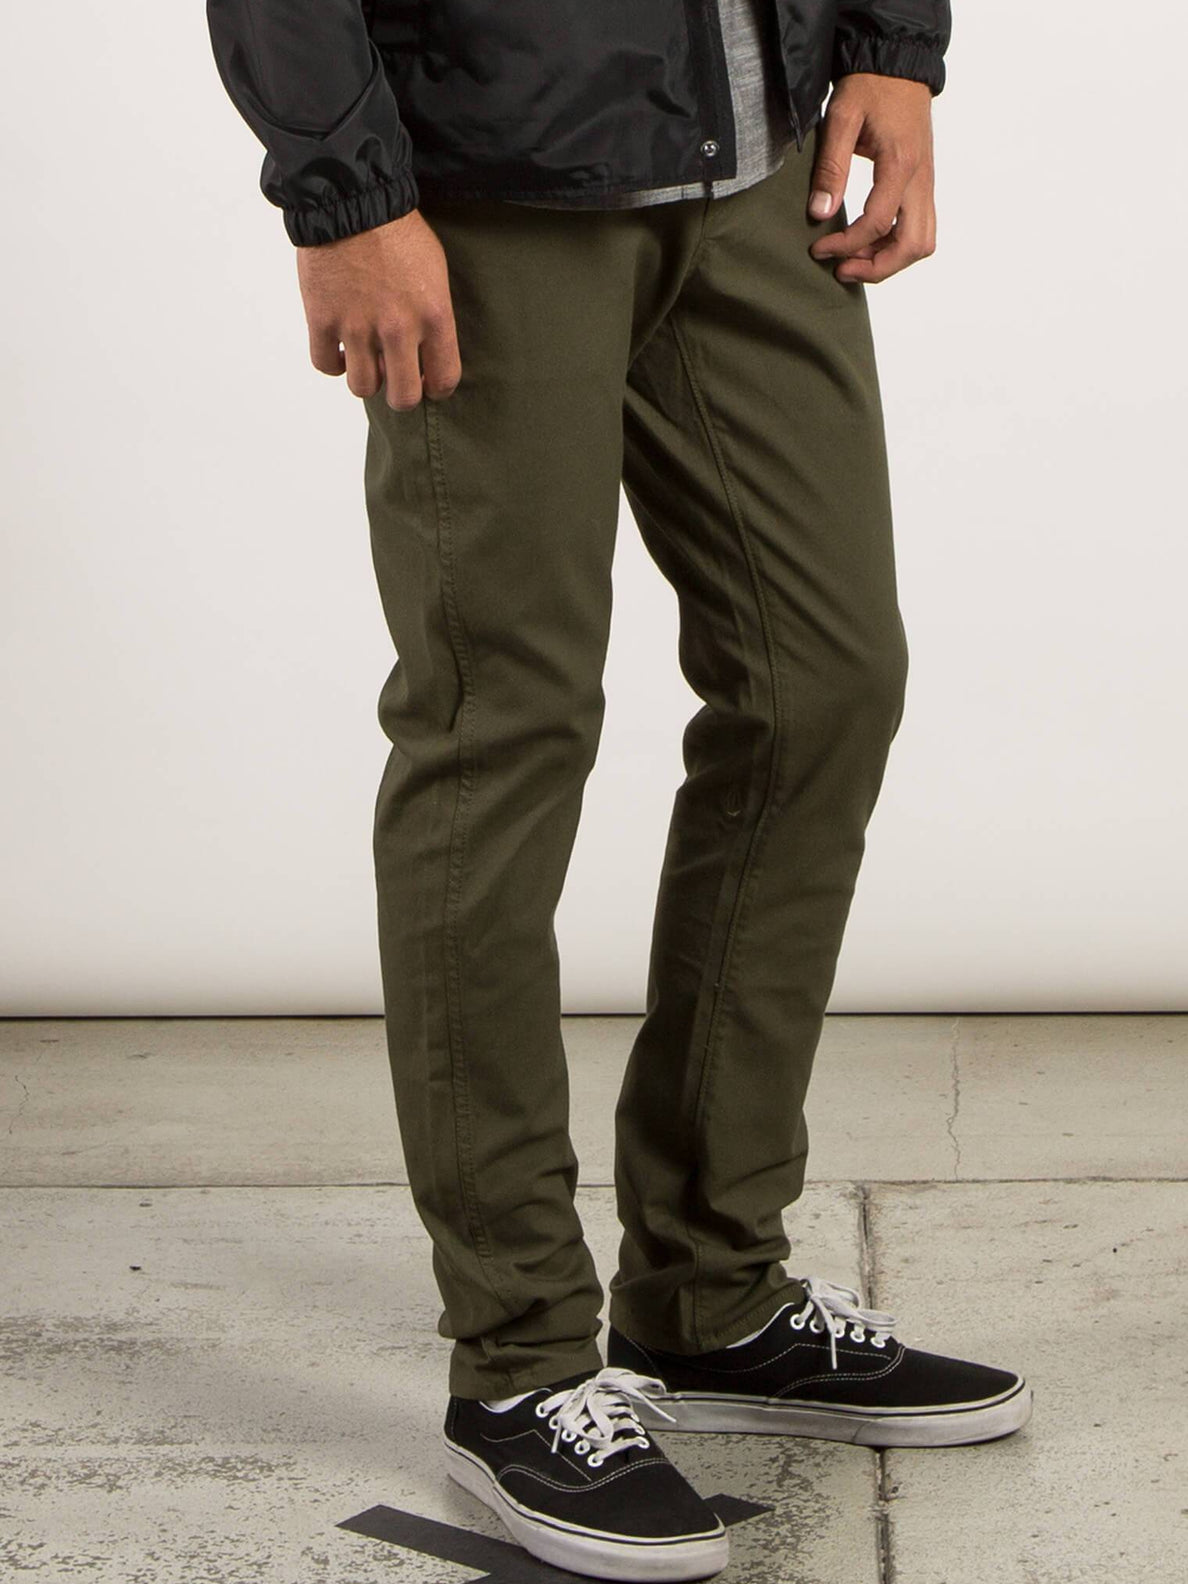 VSm Gritter Modern Tapered Chino Pants - Military